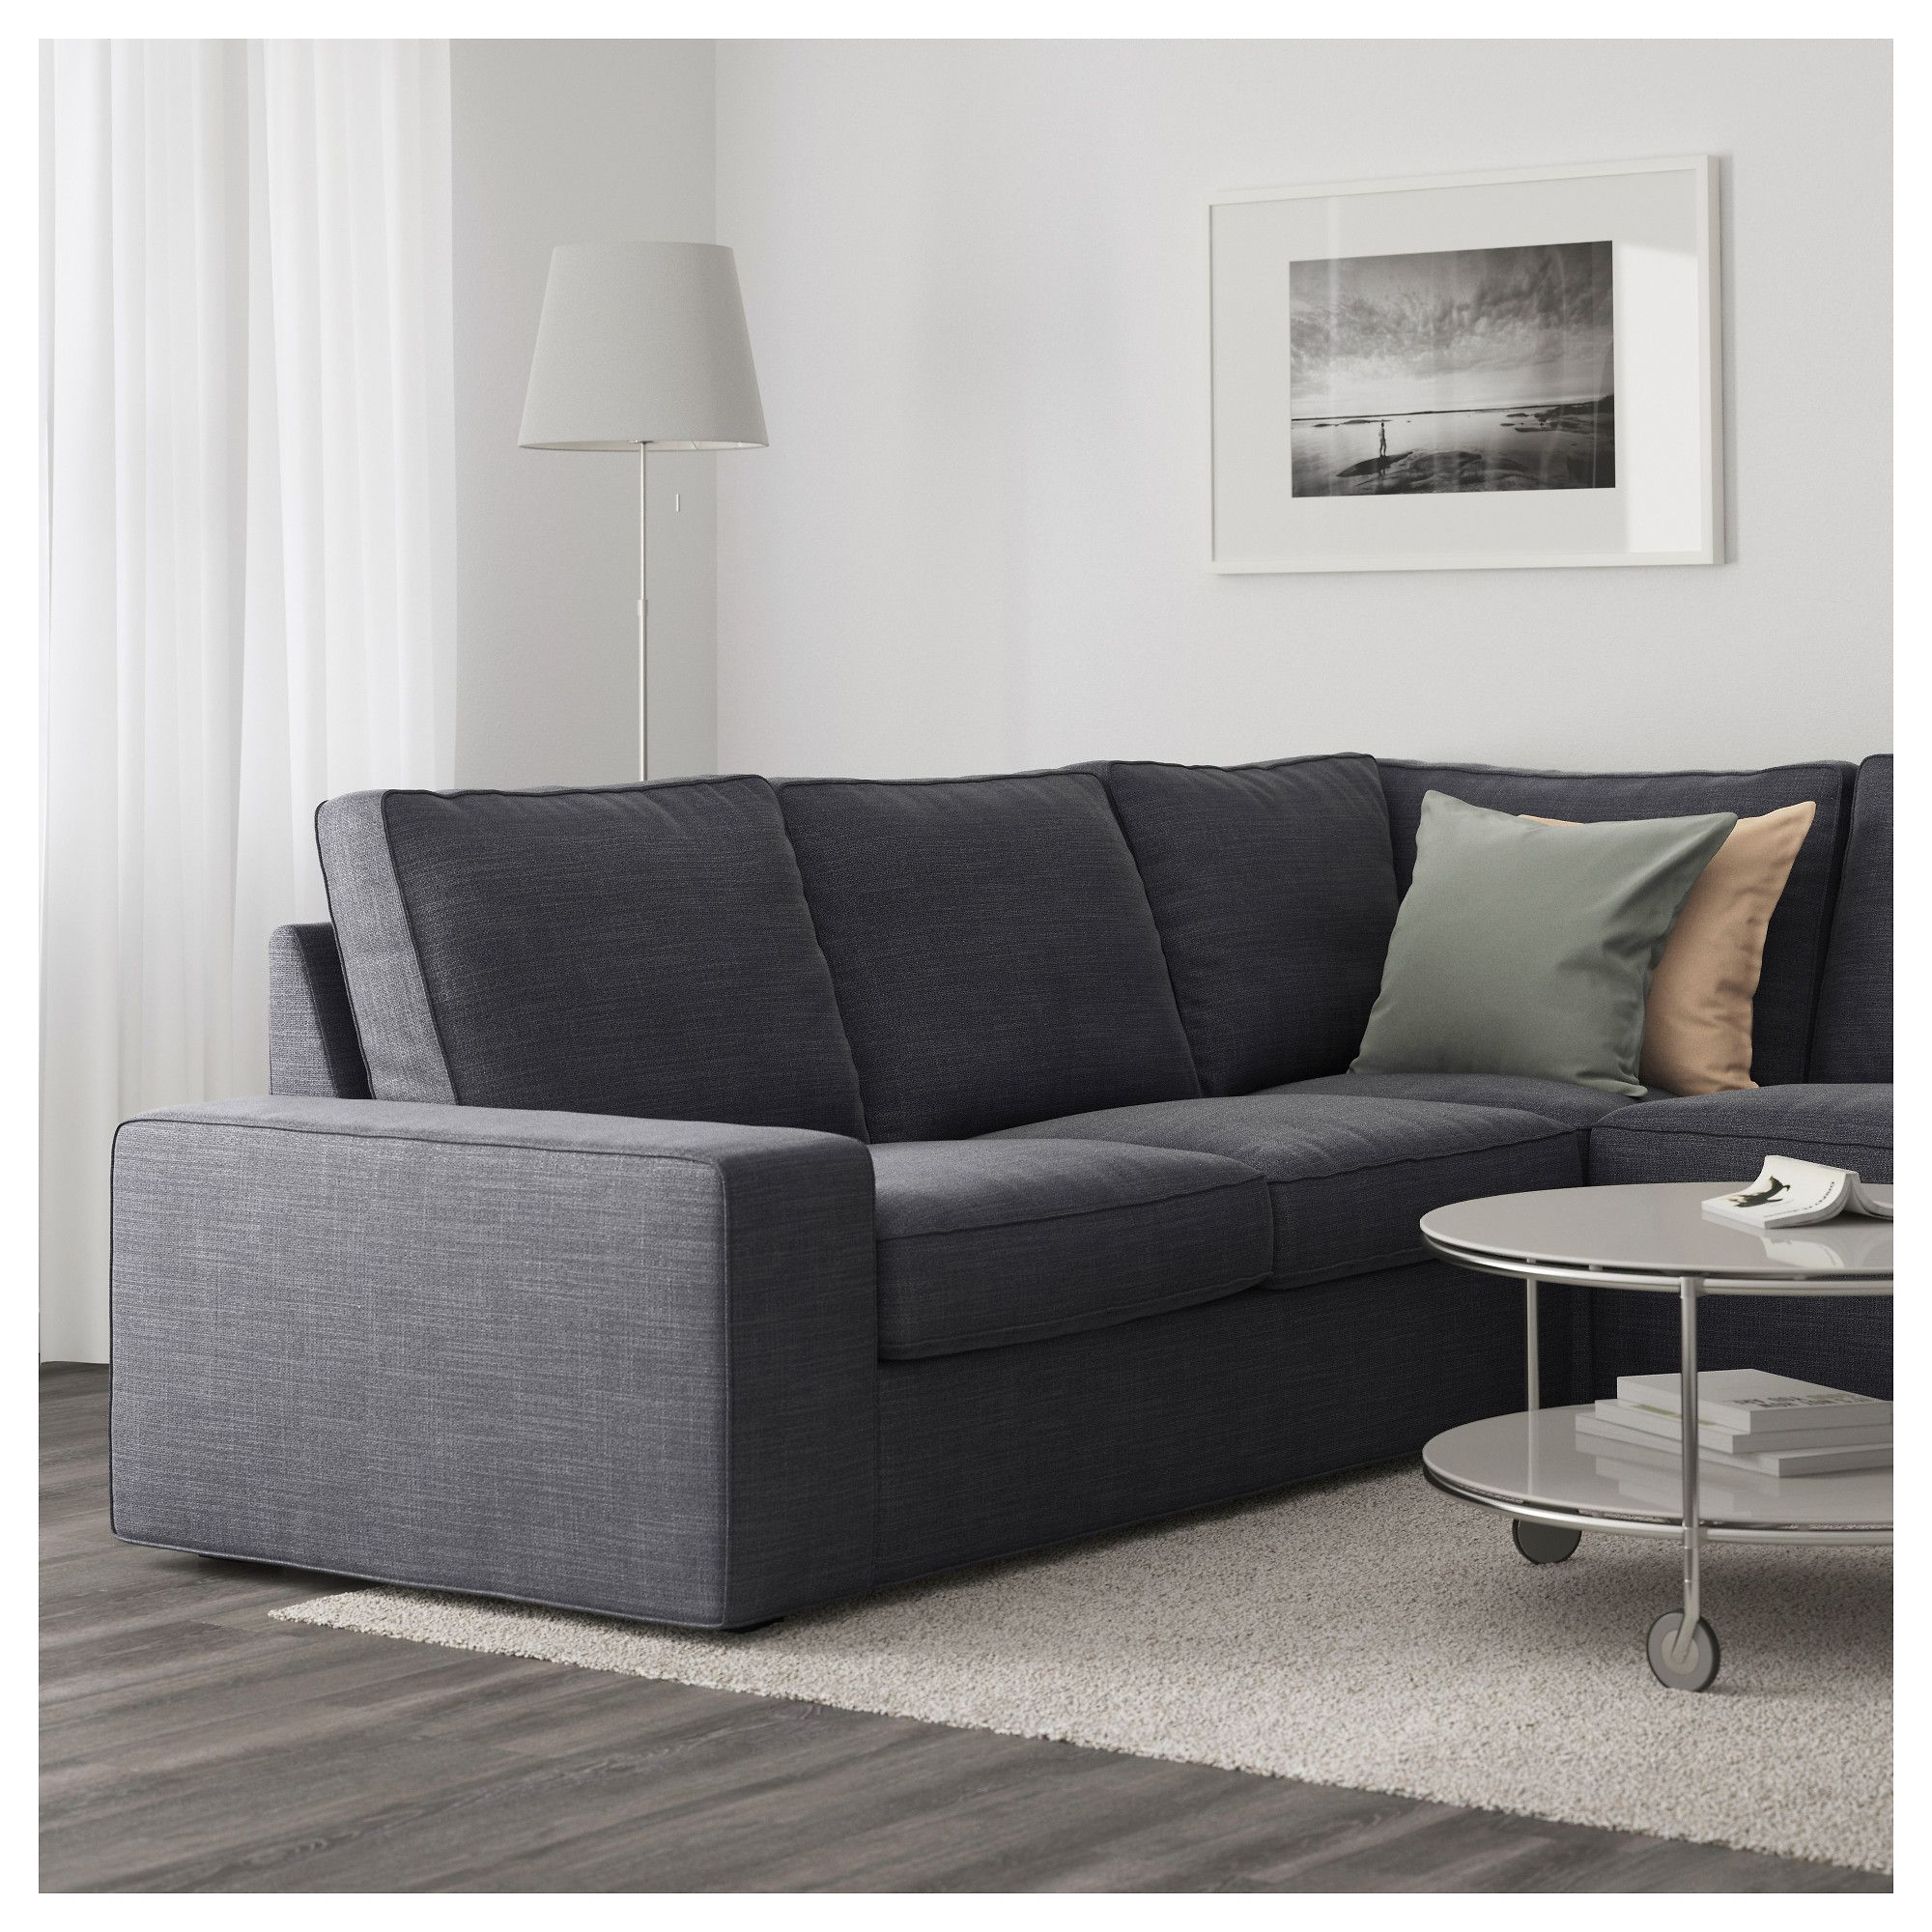 Charmant IKEA   KIVIK Sectional, 5 Seat Corner Hillared With Chaise, Anthracite